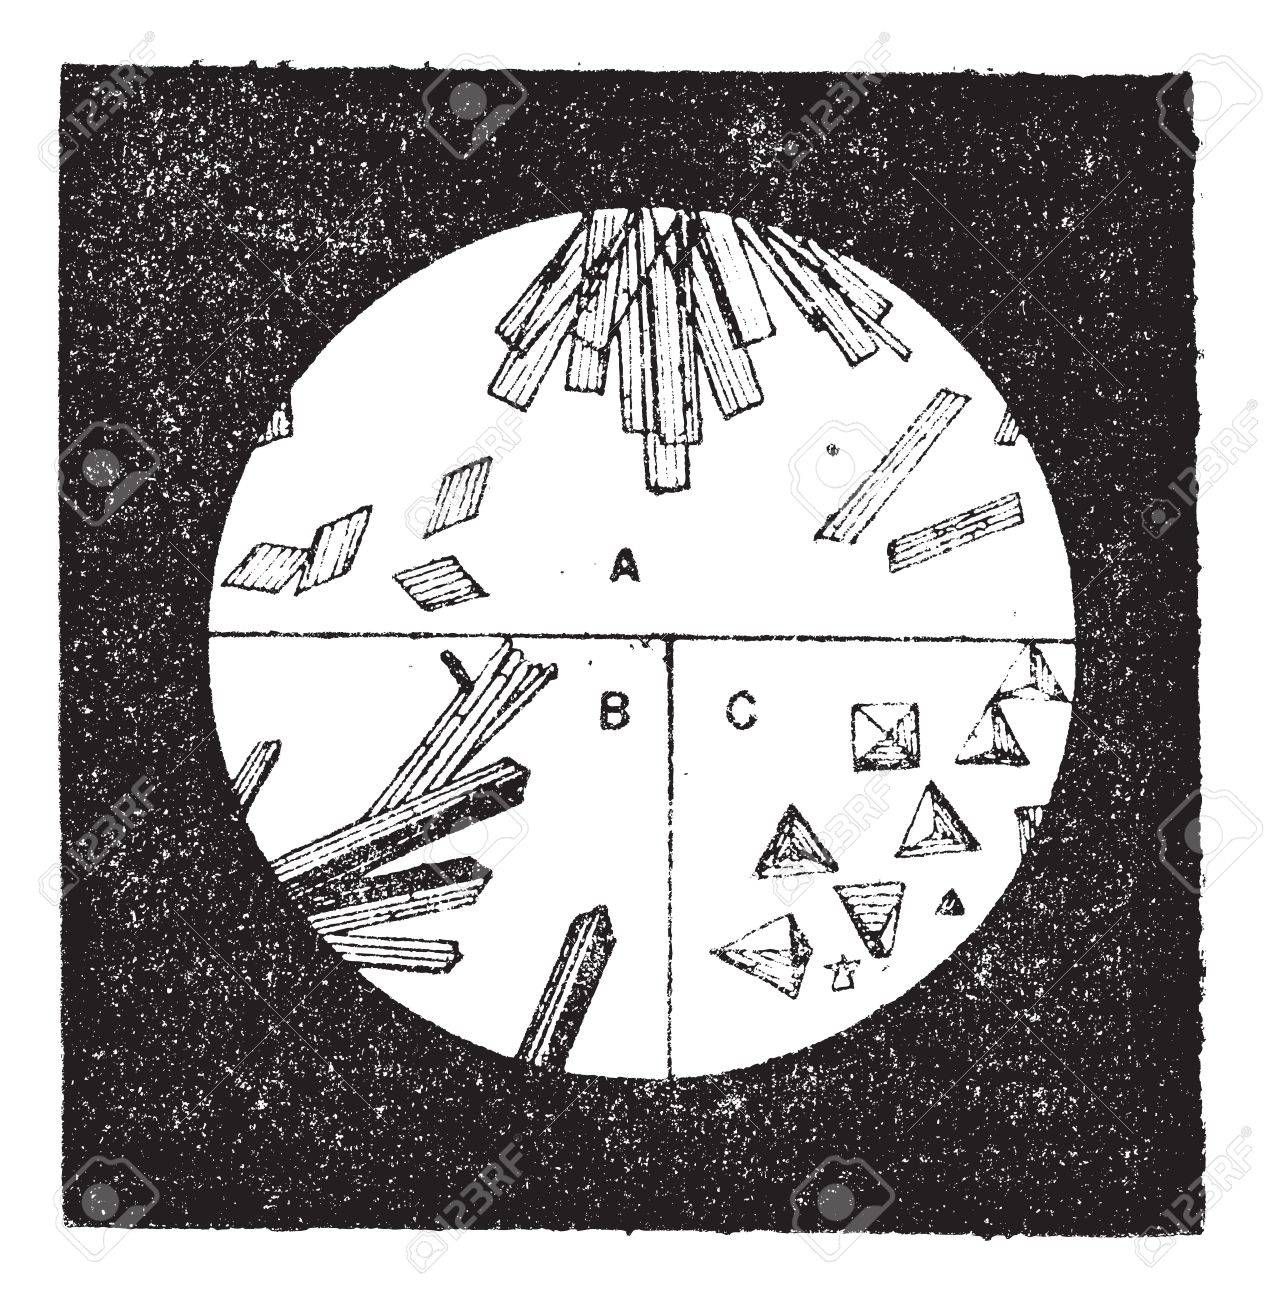 Fig. 3. A. Crystals of hemoglobin in the blood of man. B. Crystals of hemoglobin of the cat. C. Crystals of hemoglobin of the blood of guinea pigs, vintage engraved illustration. Dictionary of words and things - Larive and Fleury - 1895. Stock Vector - 13770982